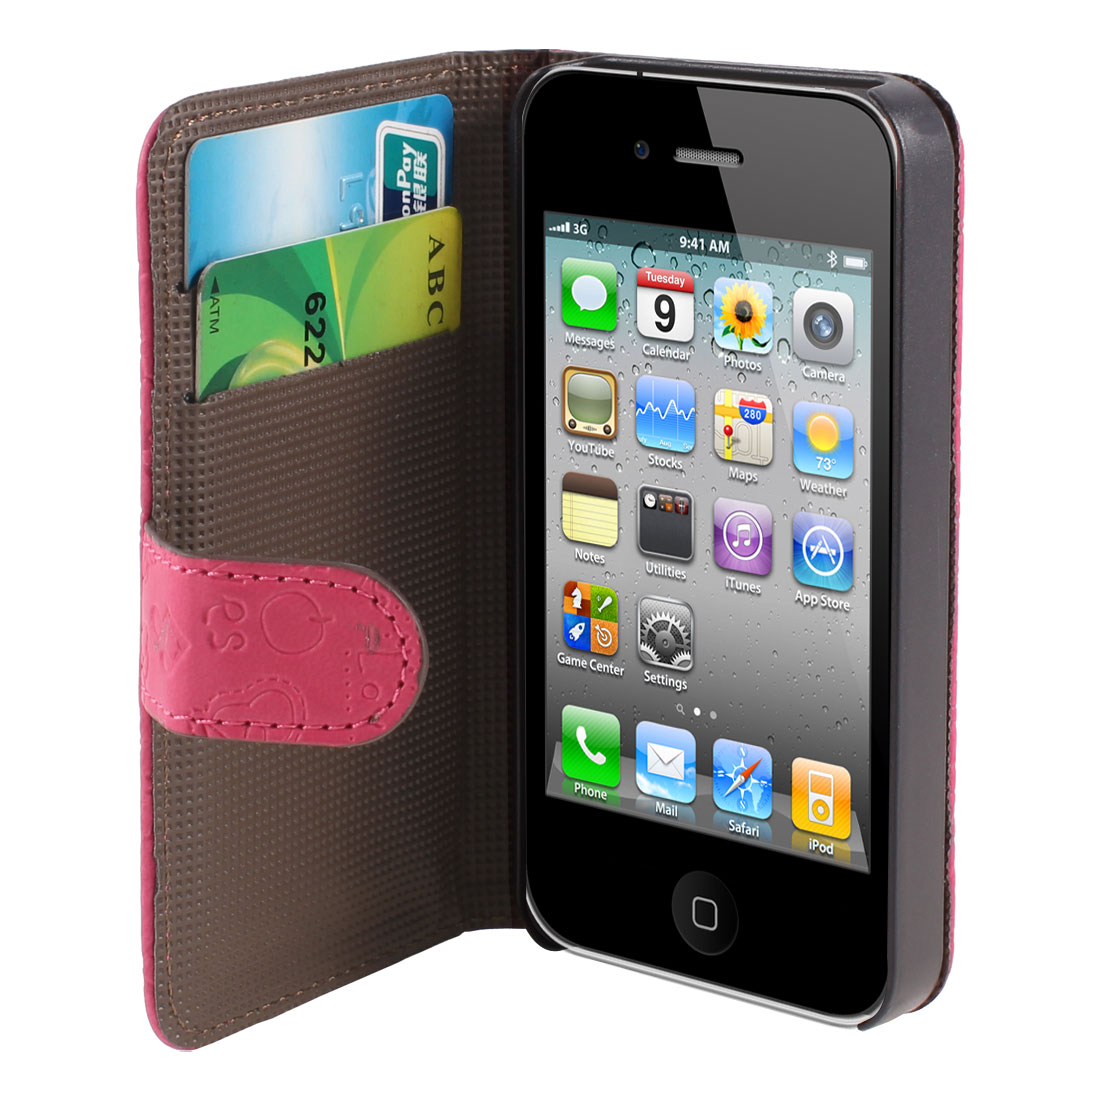 Fuchsia Cute Faerie PU Leather Flip Wallet Case Cover for iPhone 4 4S 4GS 4G 4th